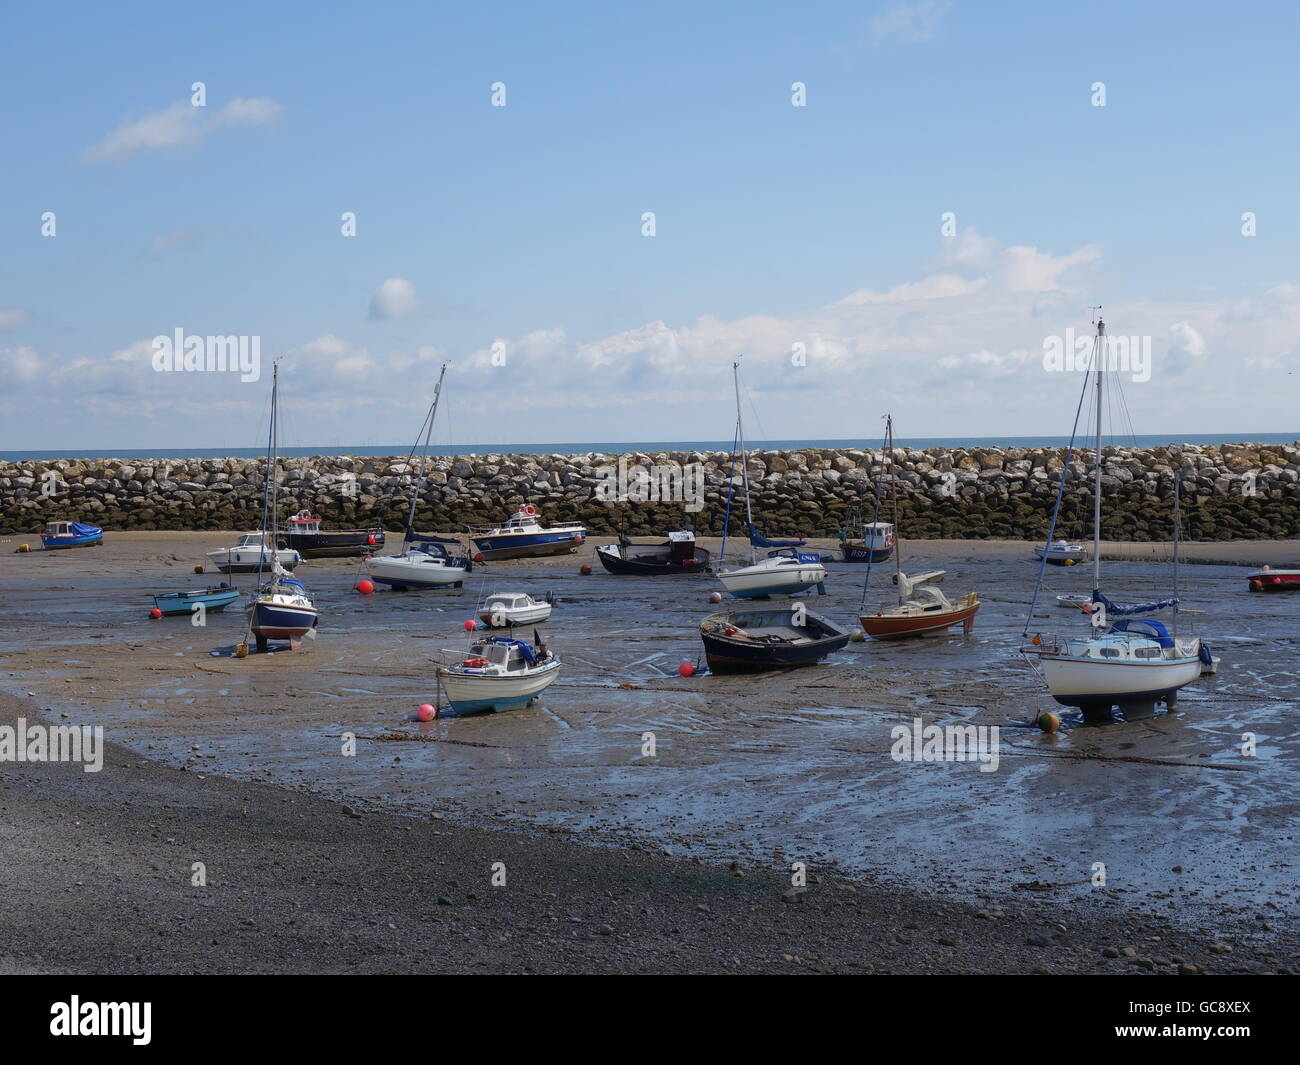 Beached yachts and boats - Stock Image